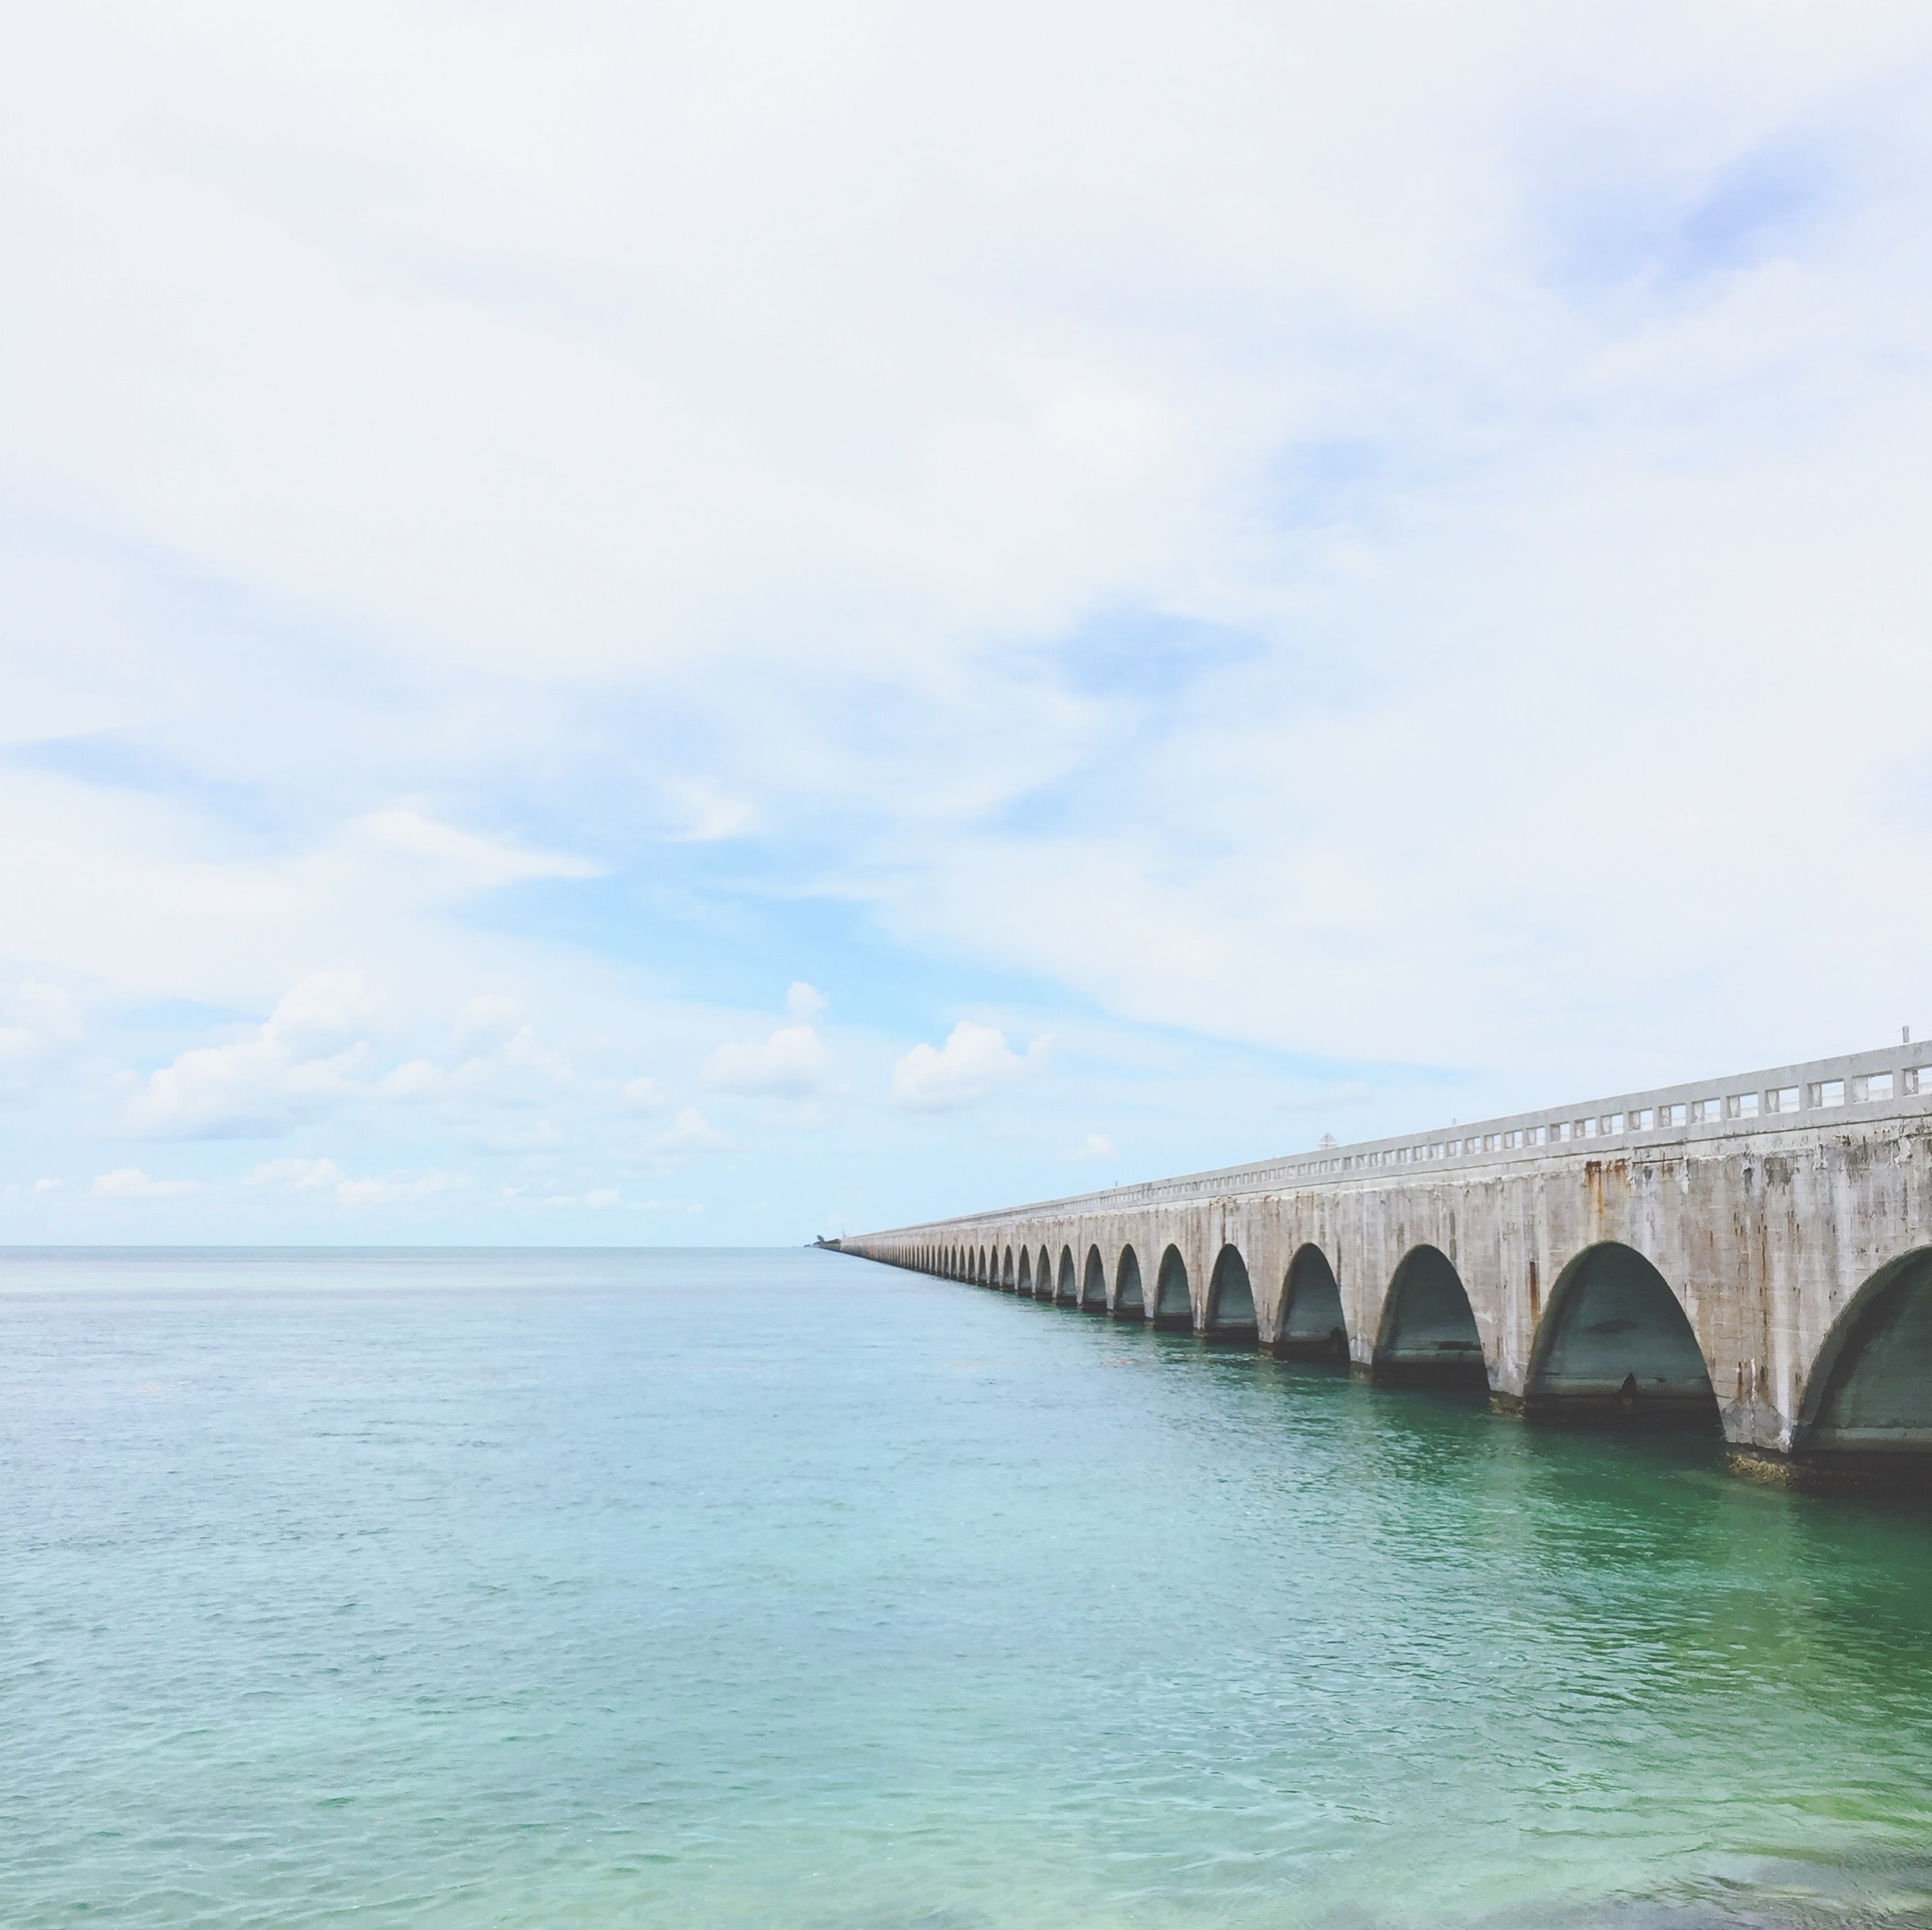 panoramic photography of bridge